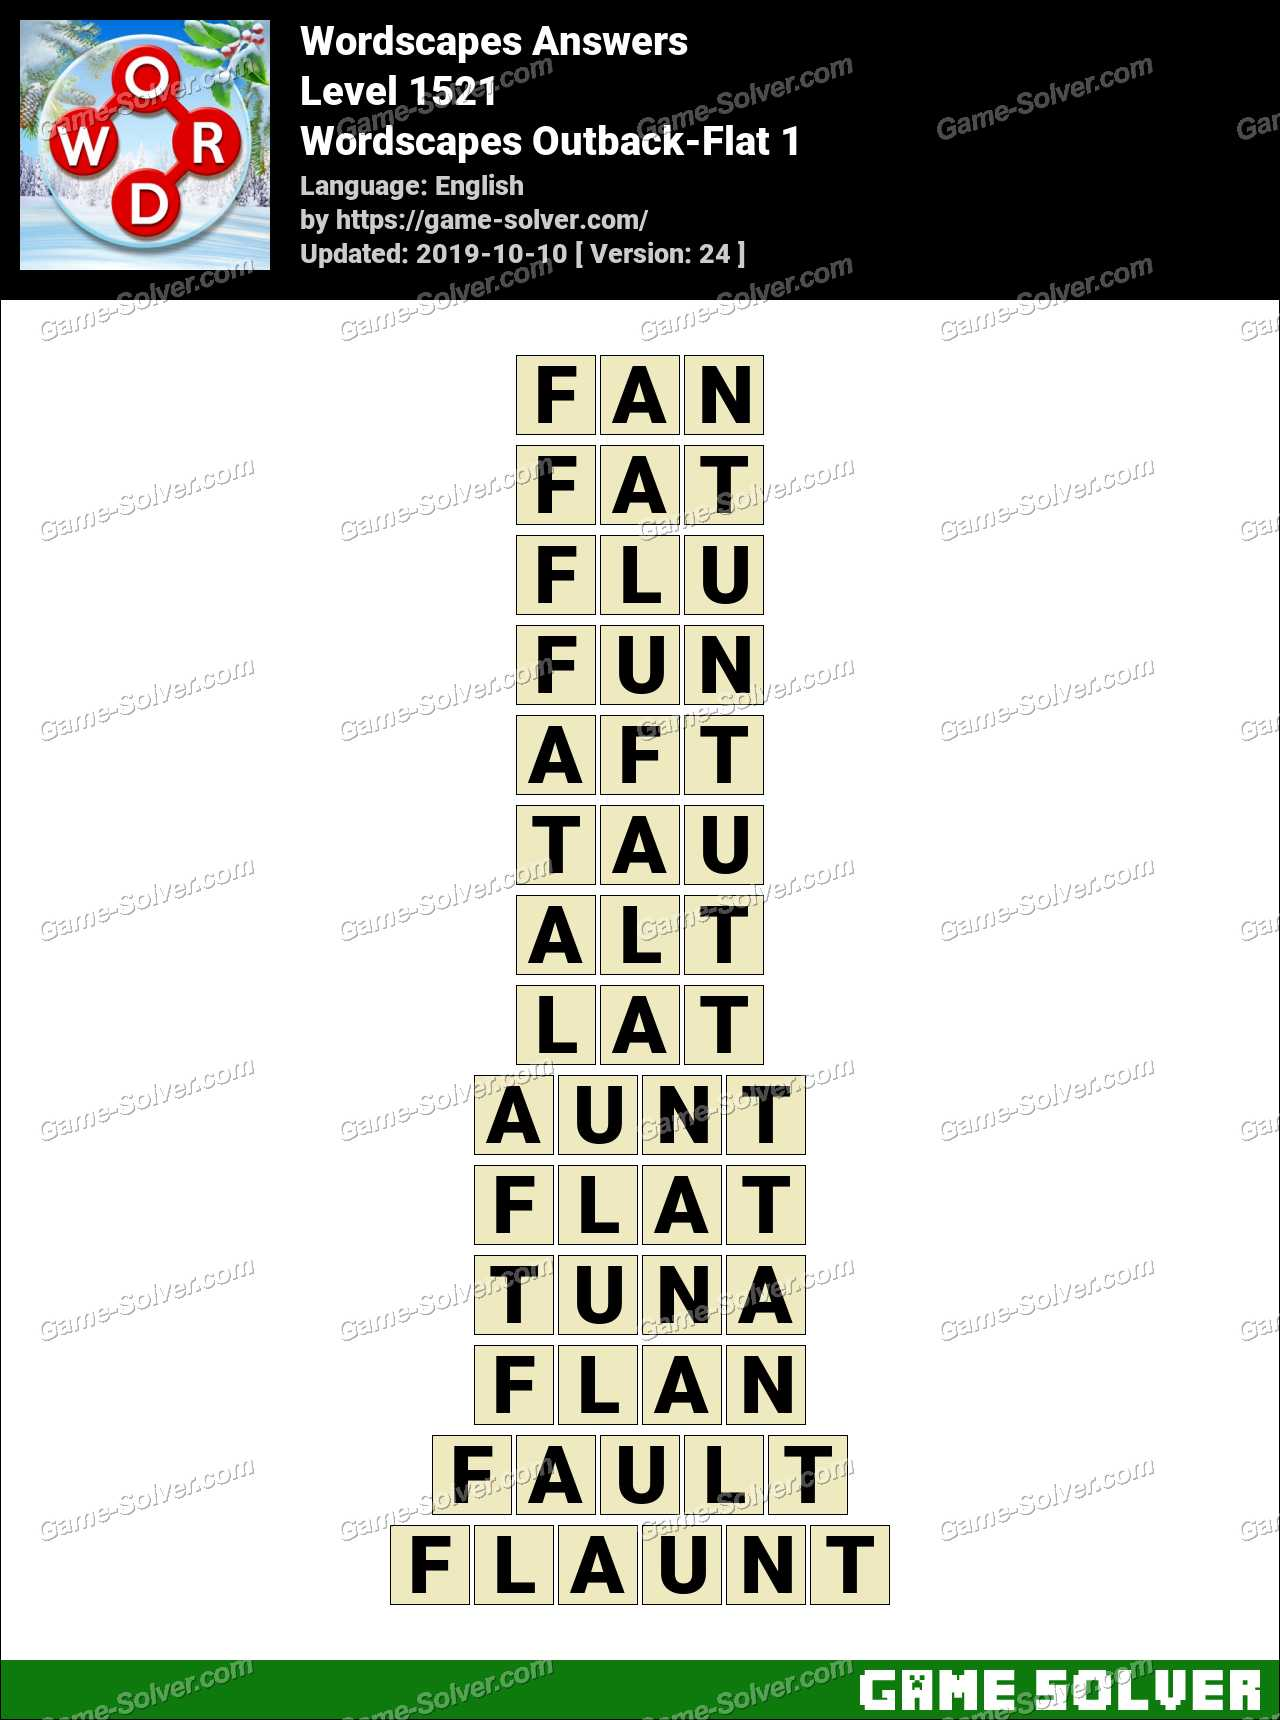 Wordscapes Outback-Flat 1 Answers